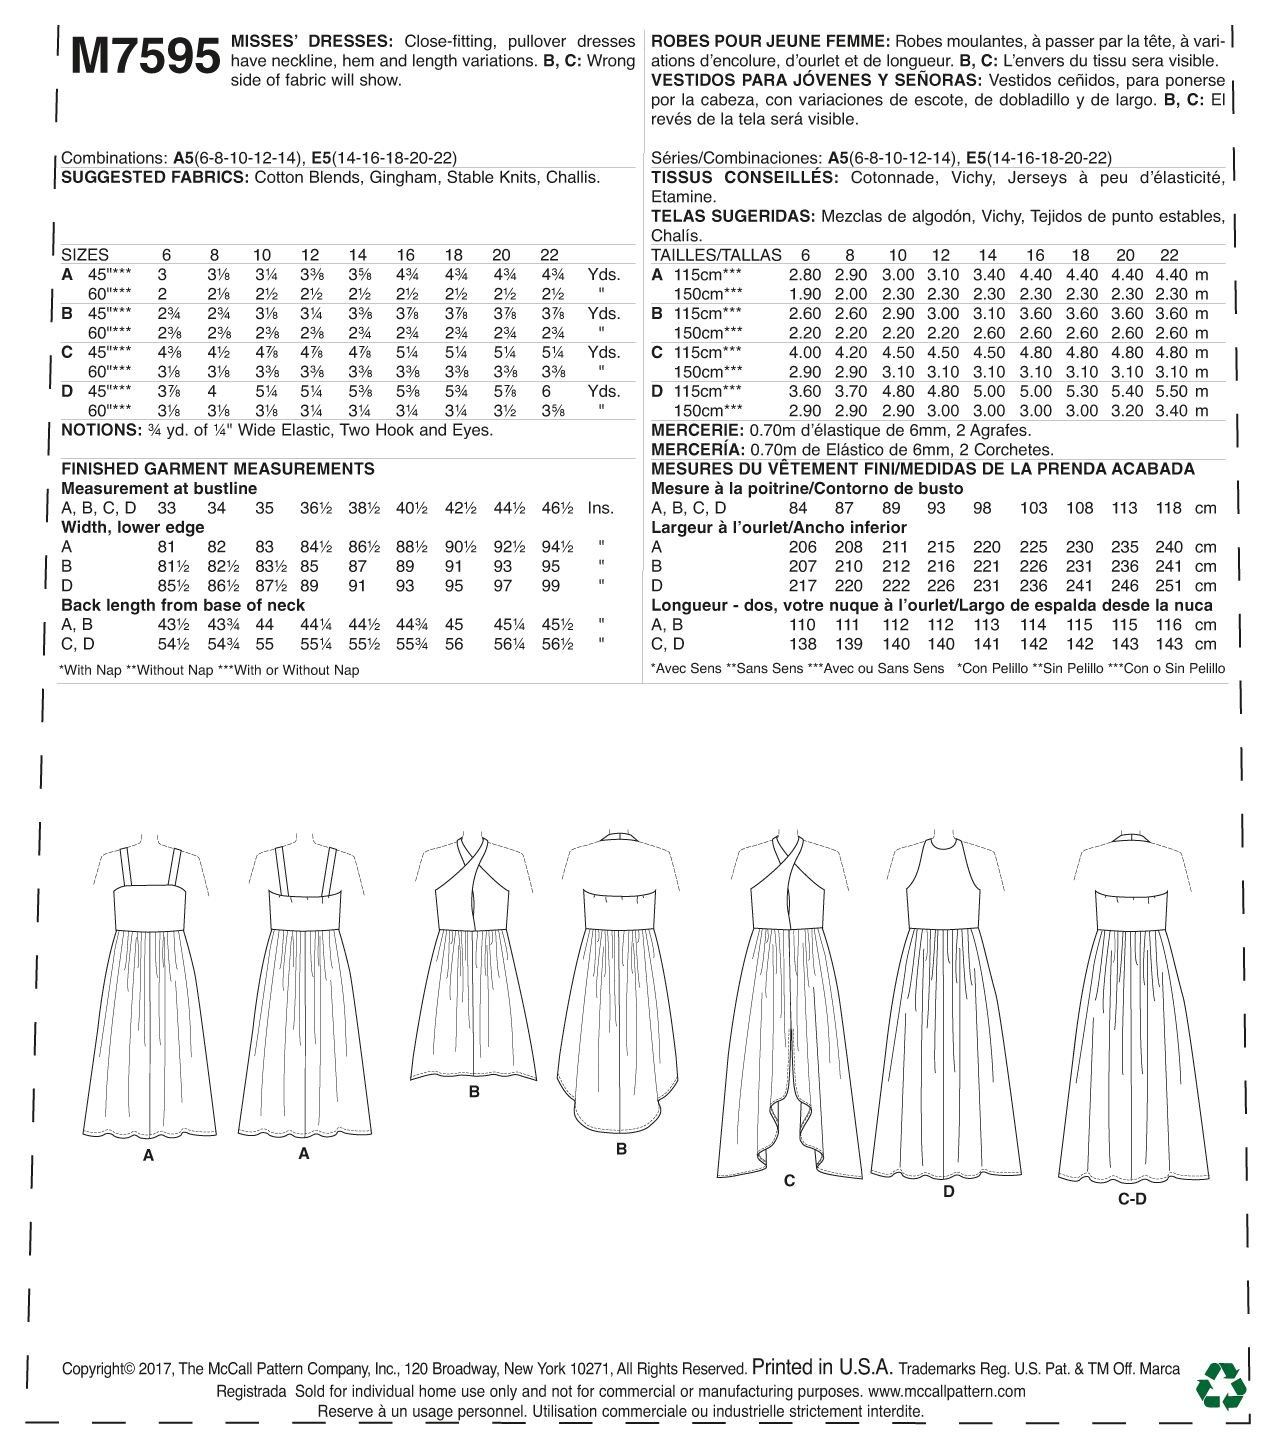 Amazon.com: Butterick M7595-A50 Misses Gathered-Waist Pullover Dresses, 6-8-10-12-14